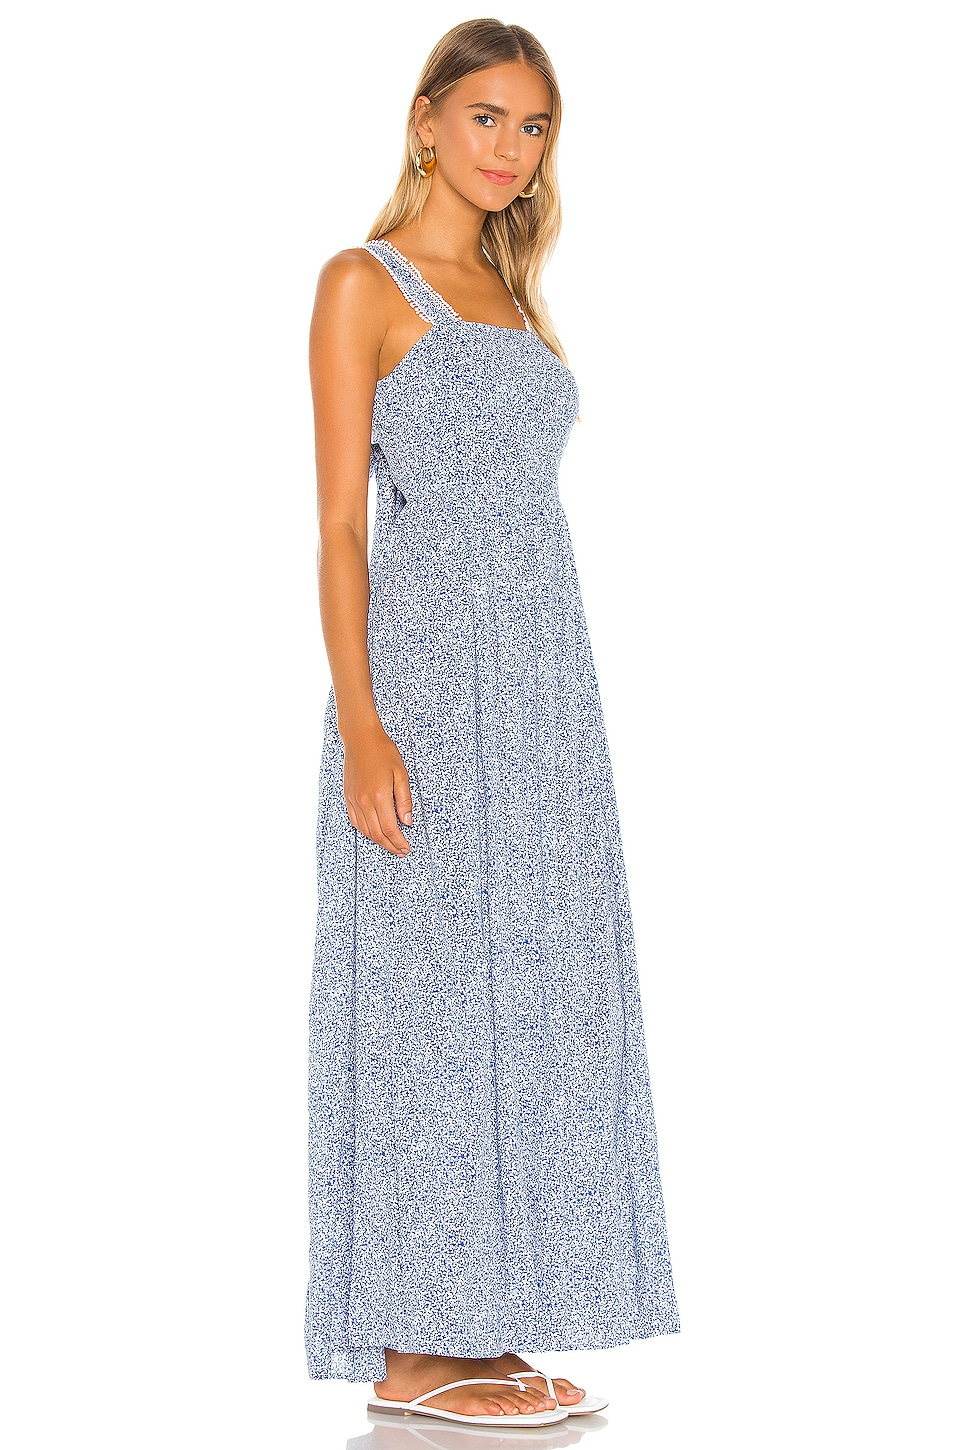 Tie Back Vintage Ditsy Maxi Dress, view 3, click to view large image.